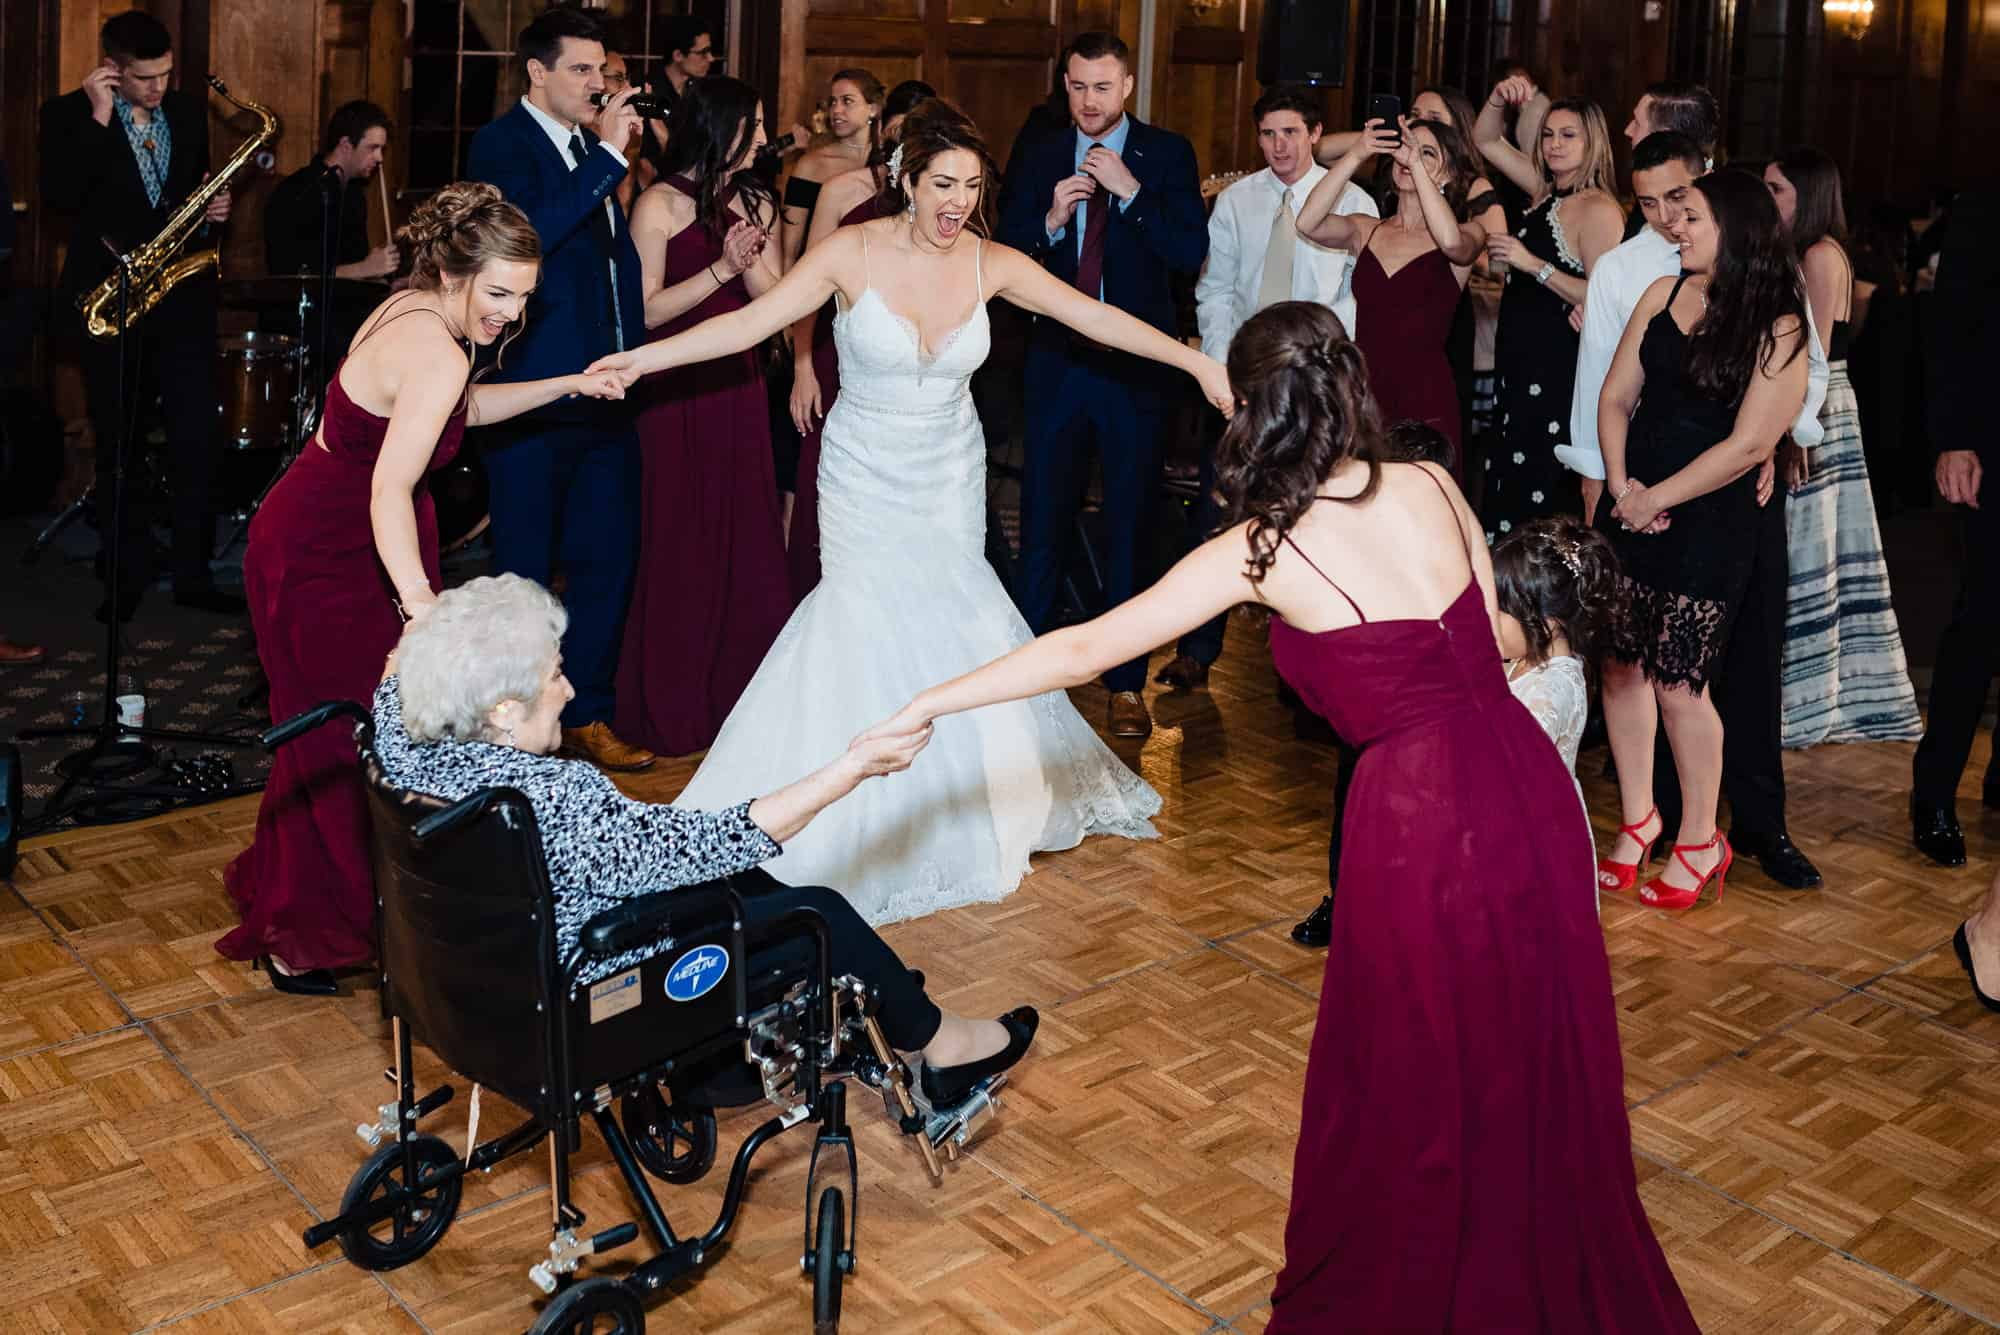 Bride and her grandmother dancing with bridesmaids